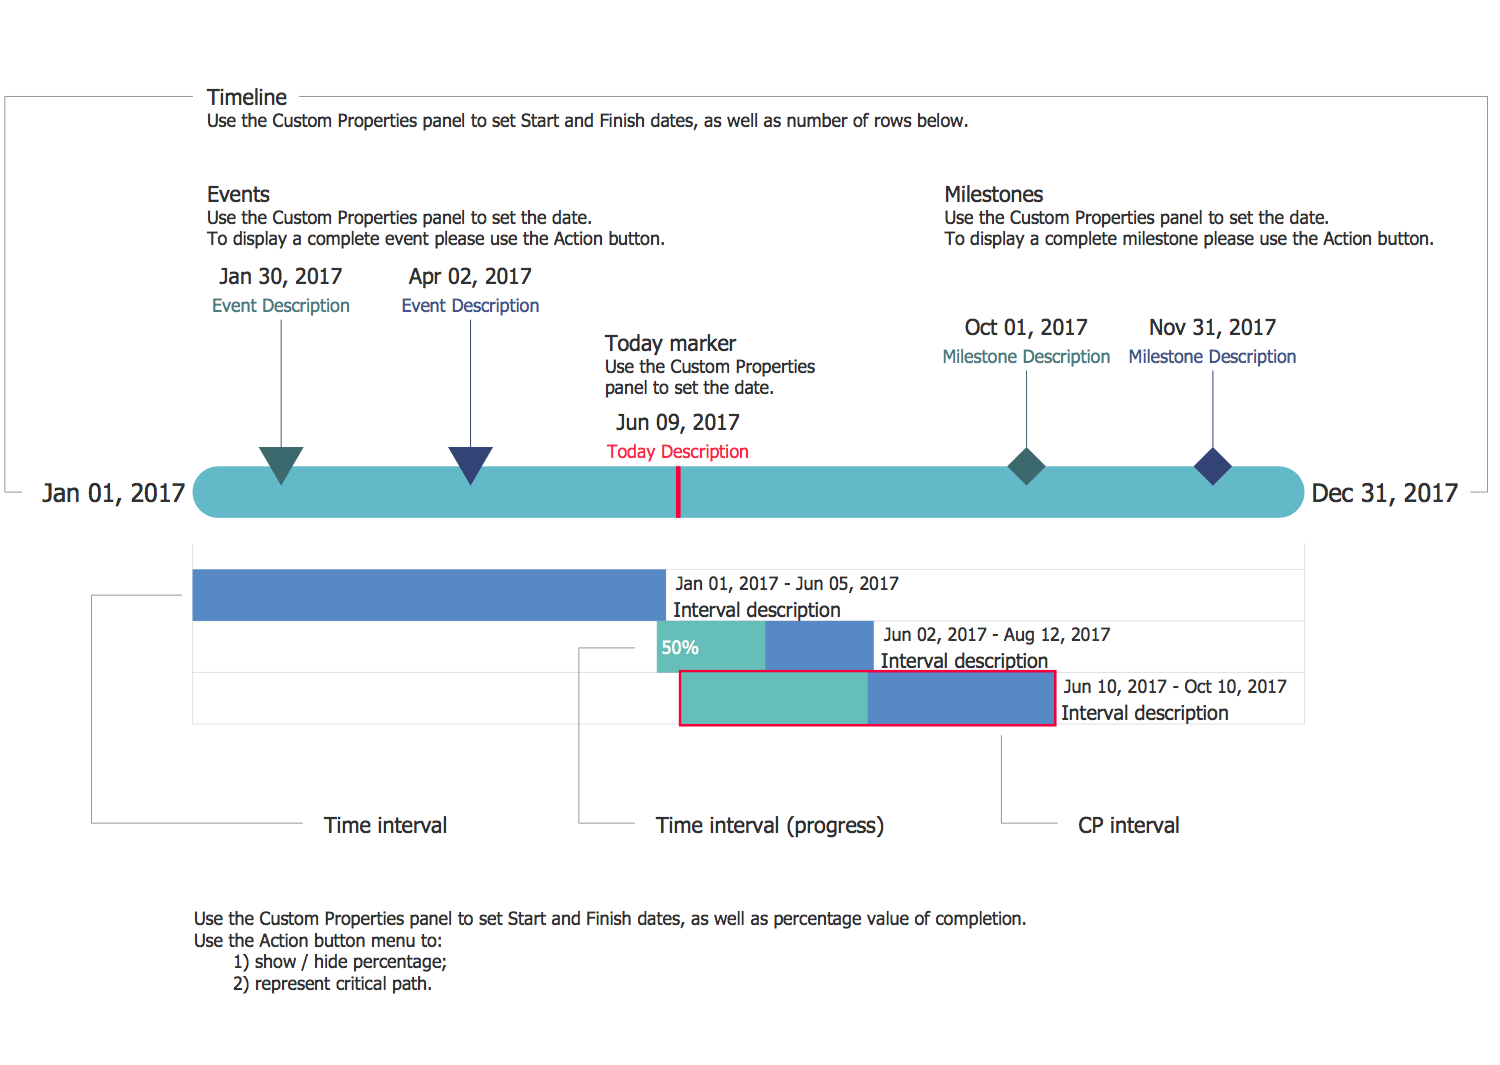 Timeline Diagrams Solution | ConceptDraw.com